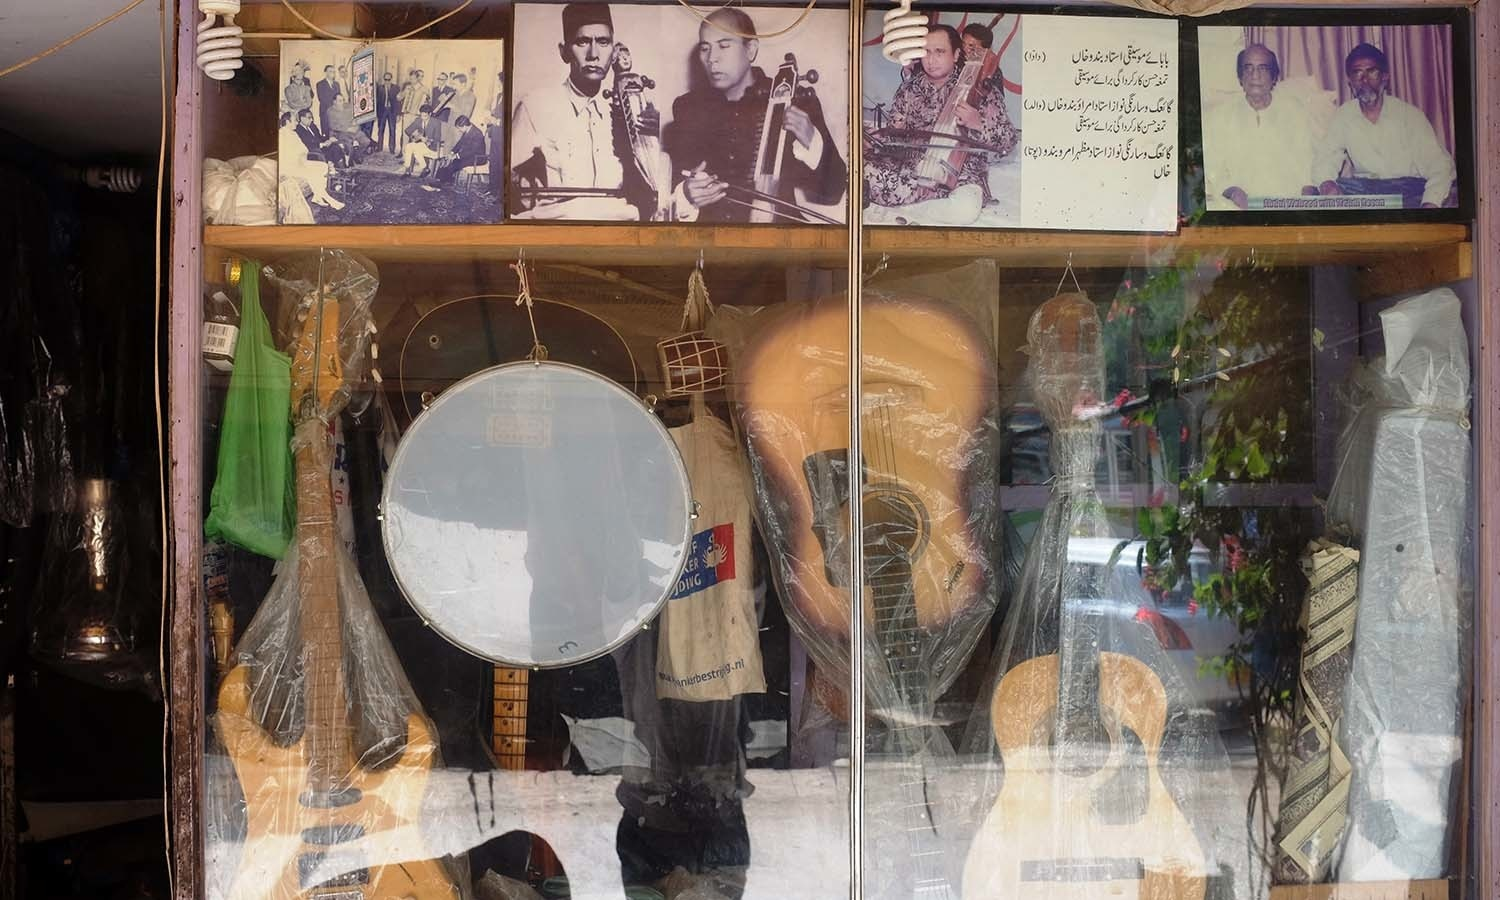 Waheed's photo with Mehdi Hassan is proudly displayed at the entrance.